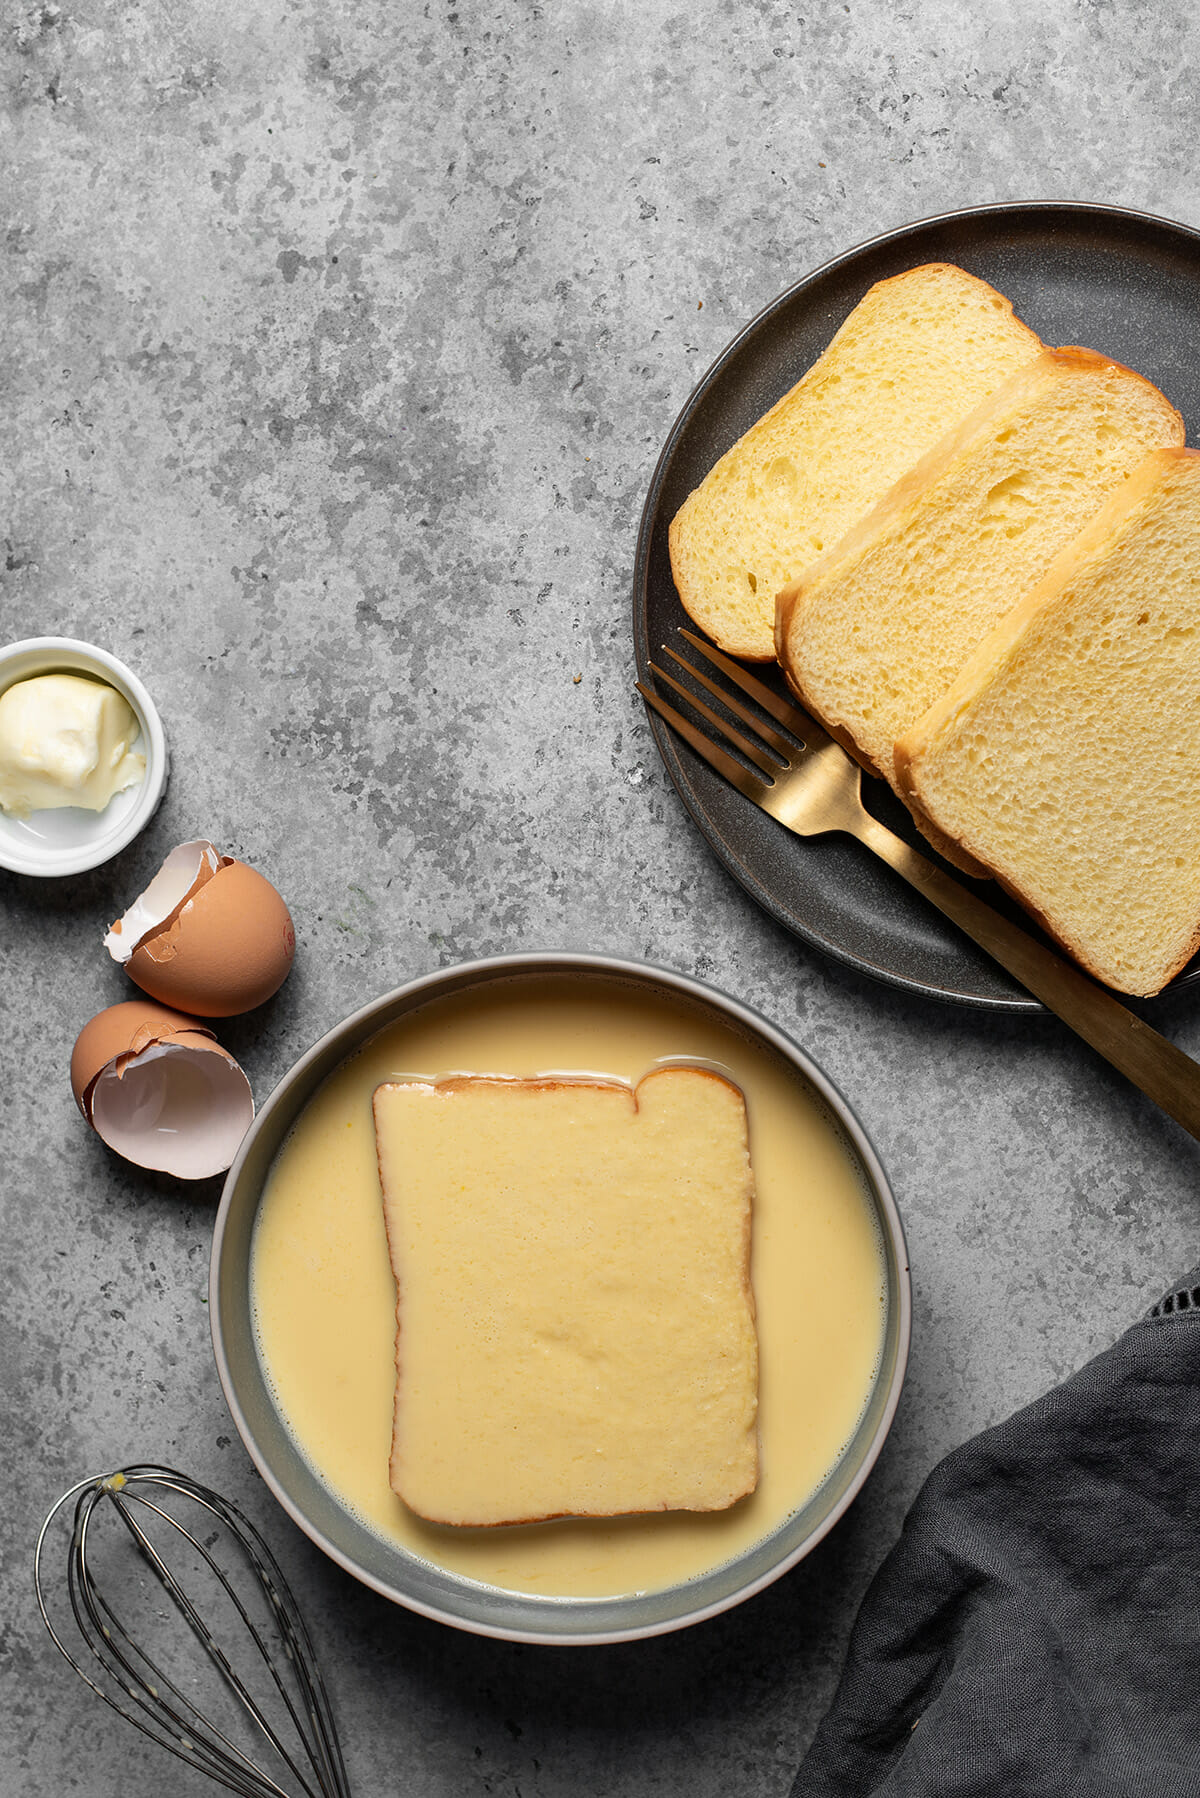 Dunking the bread into egg mixture to make French toast.